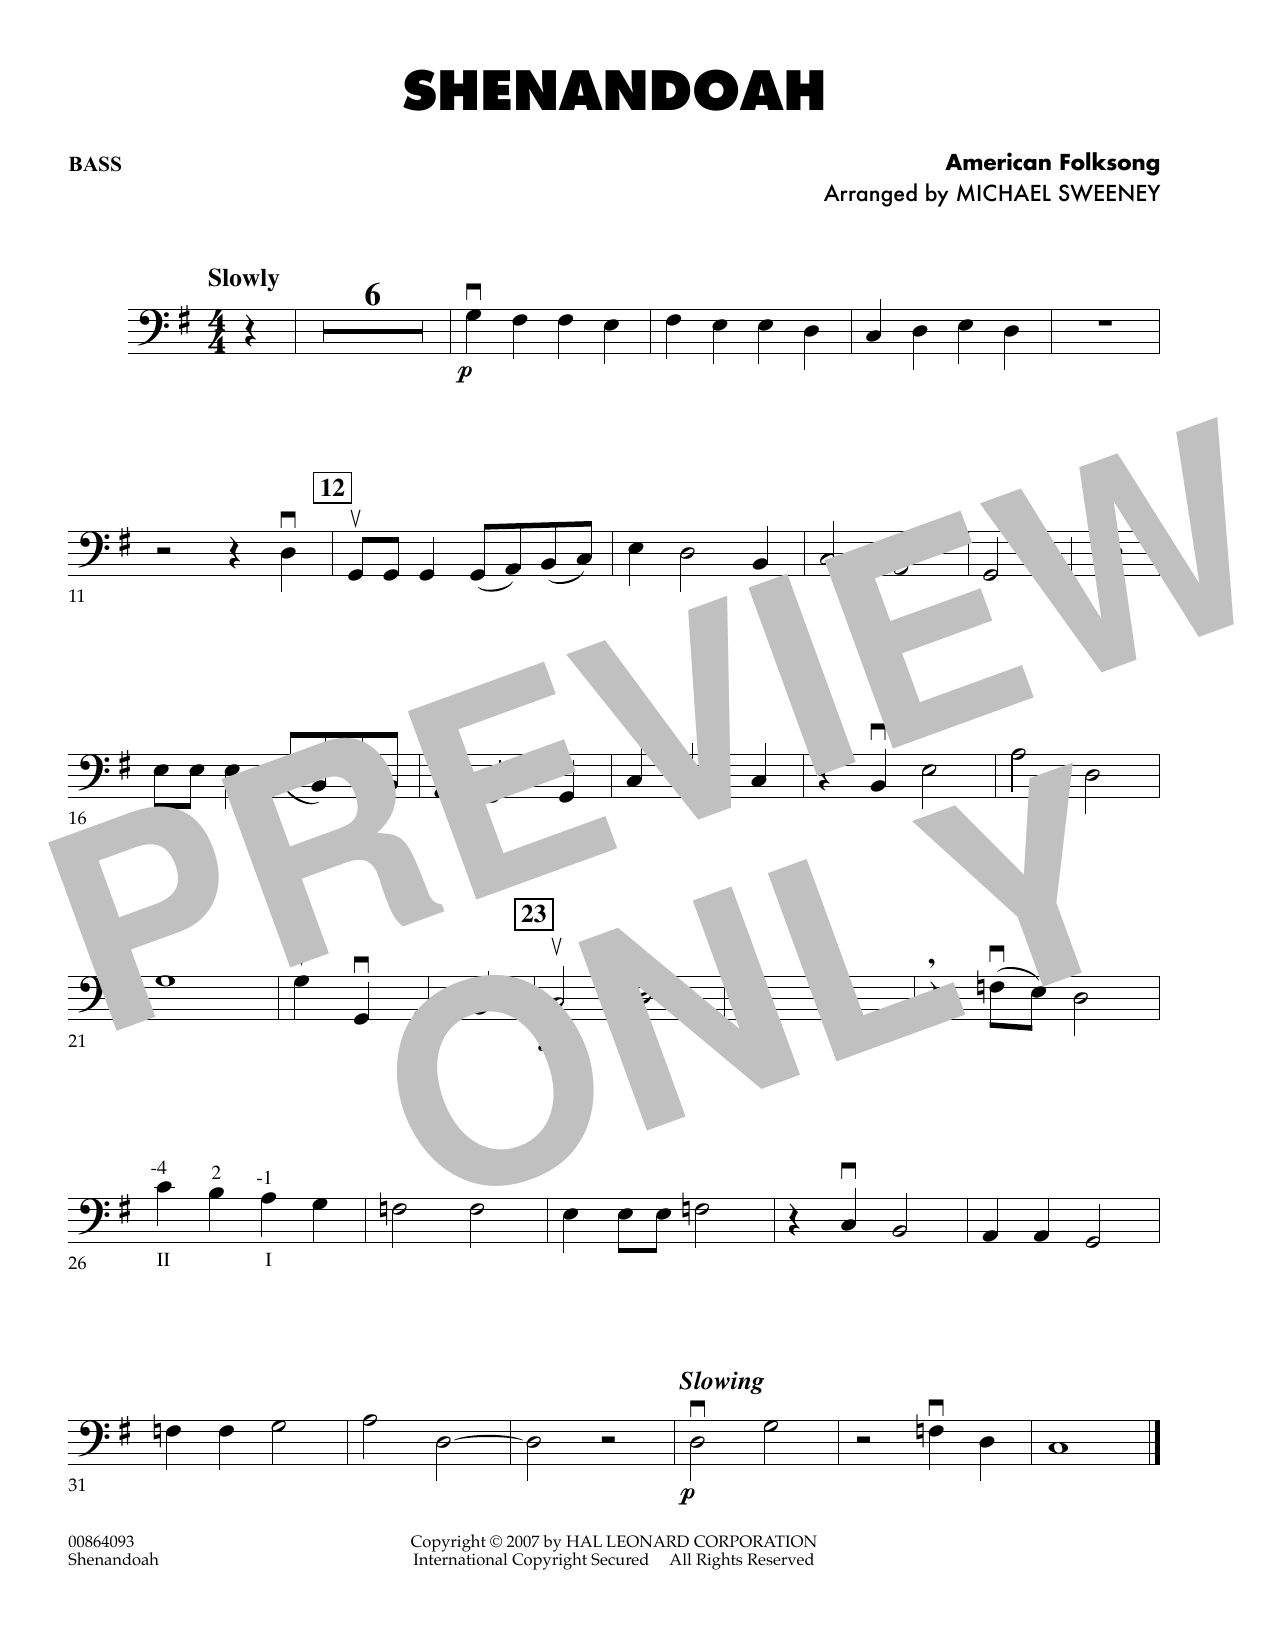 Michael Sweeney Shenandoah - Bass sheet music preview music notes and score for Orchestra including 1 page(s)